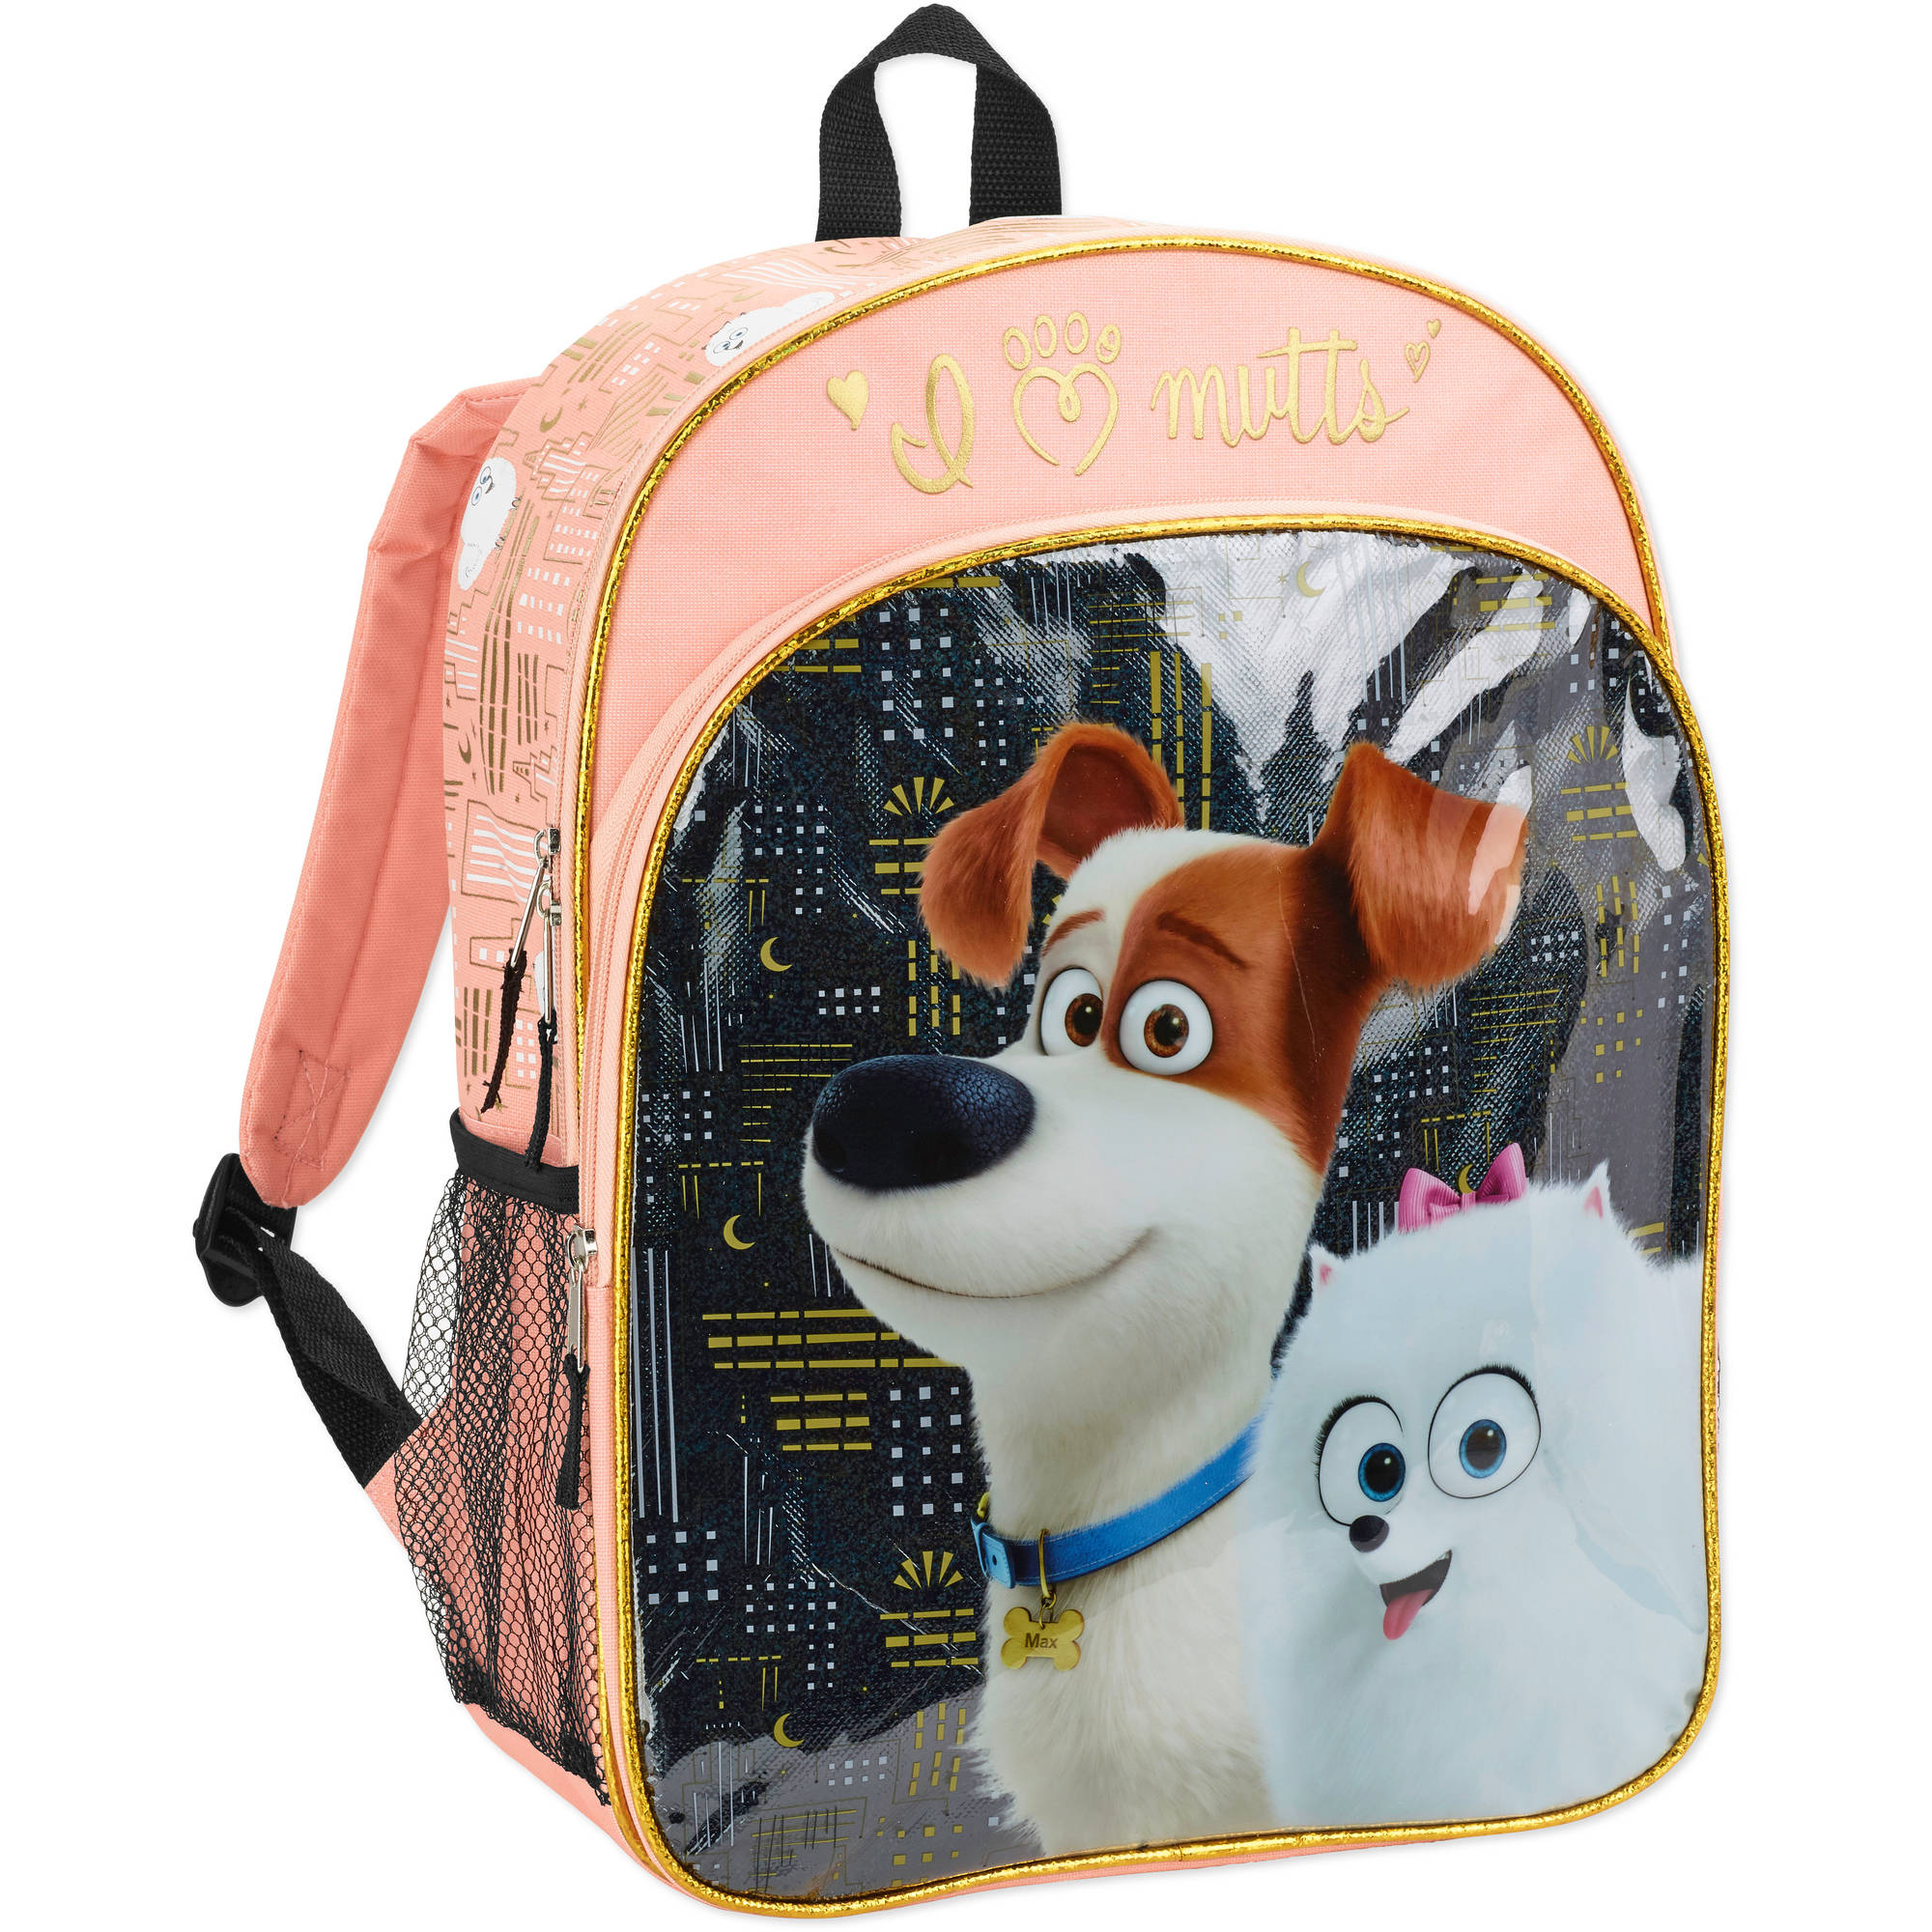 The Secret Life of Pets City Lights Kids' Backpack